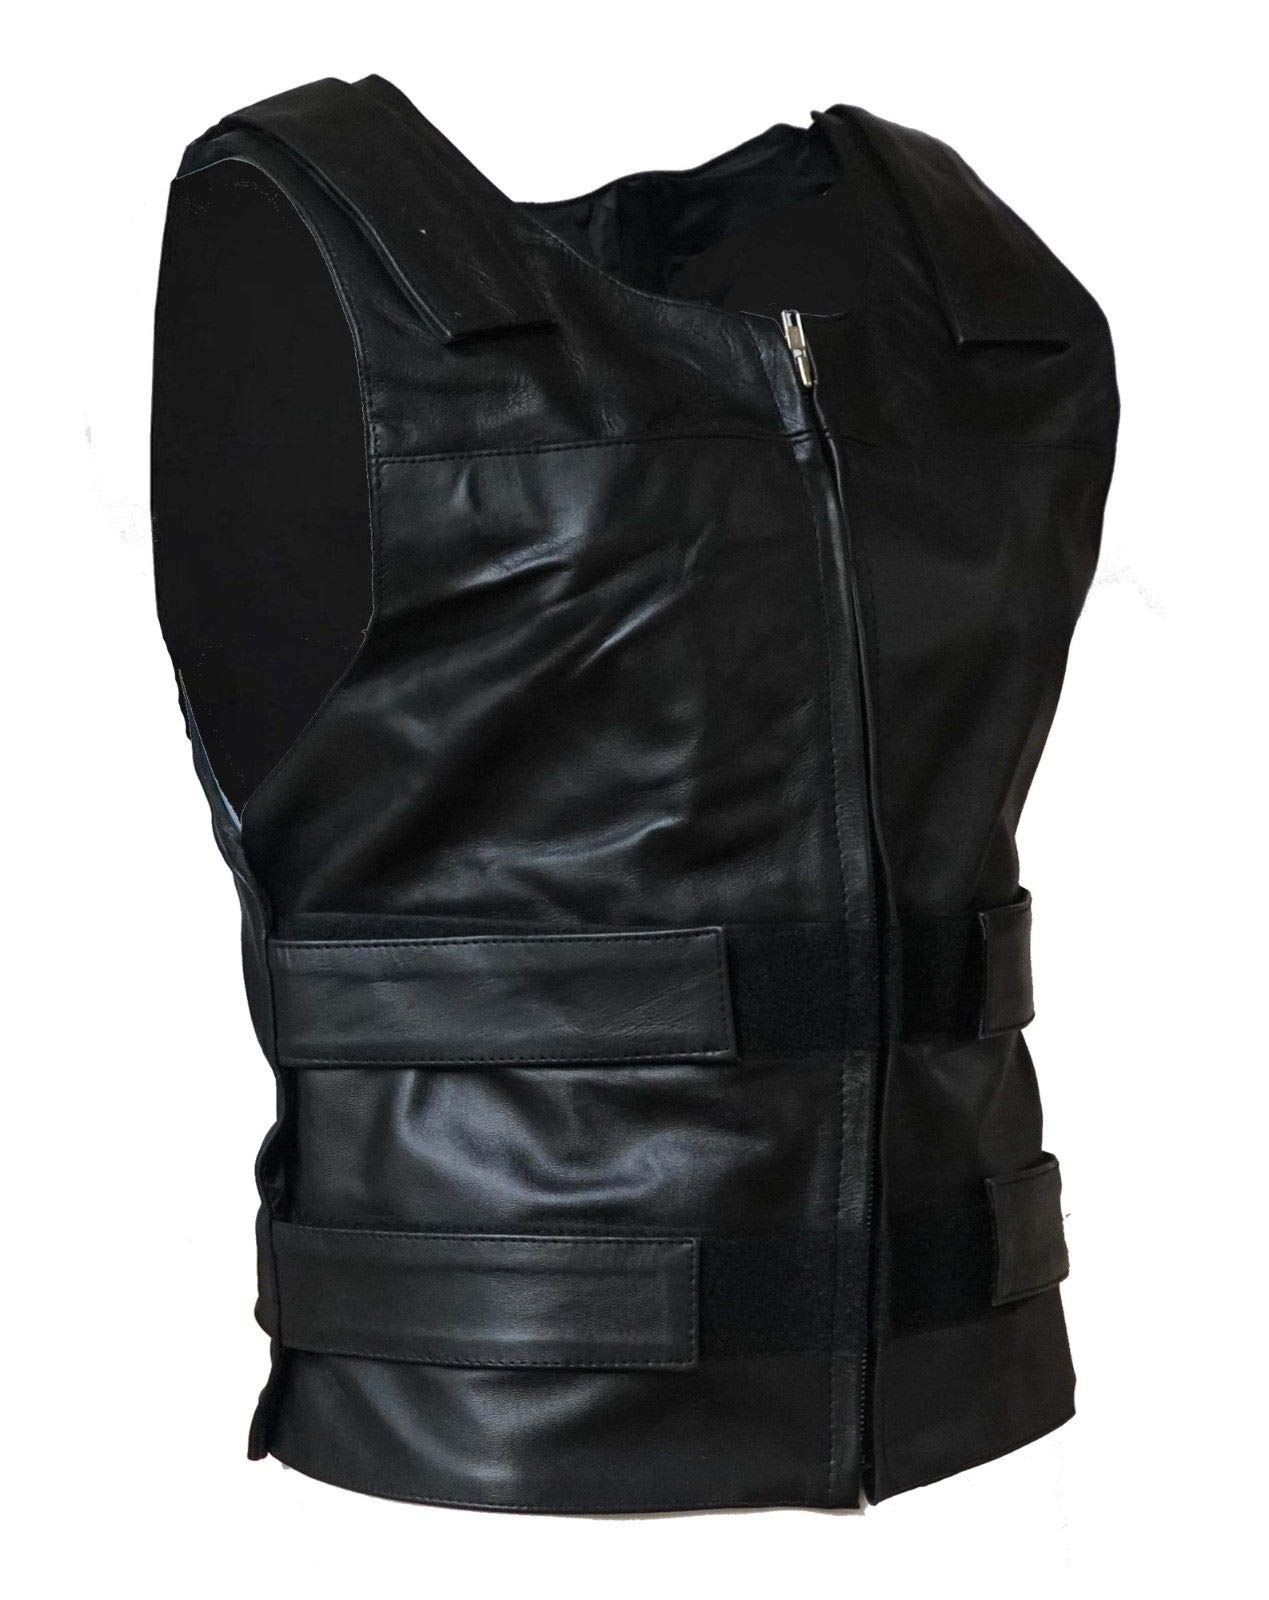 IKleather Mens Bullet Proof style Leather Motorcycle Vest for bikers Club Tactical Vest (M, Black)